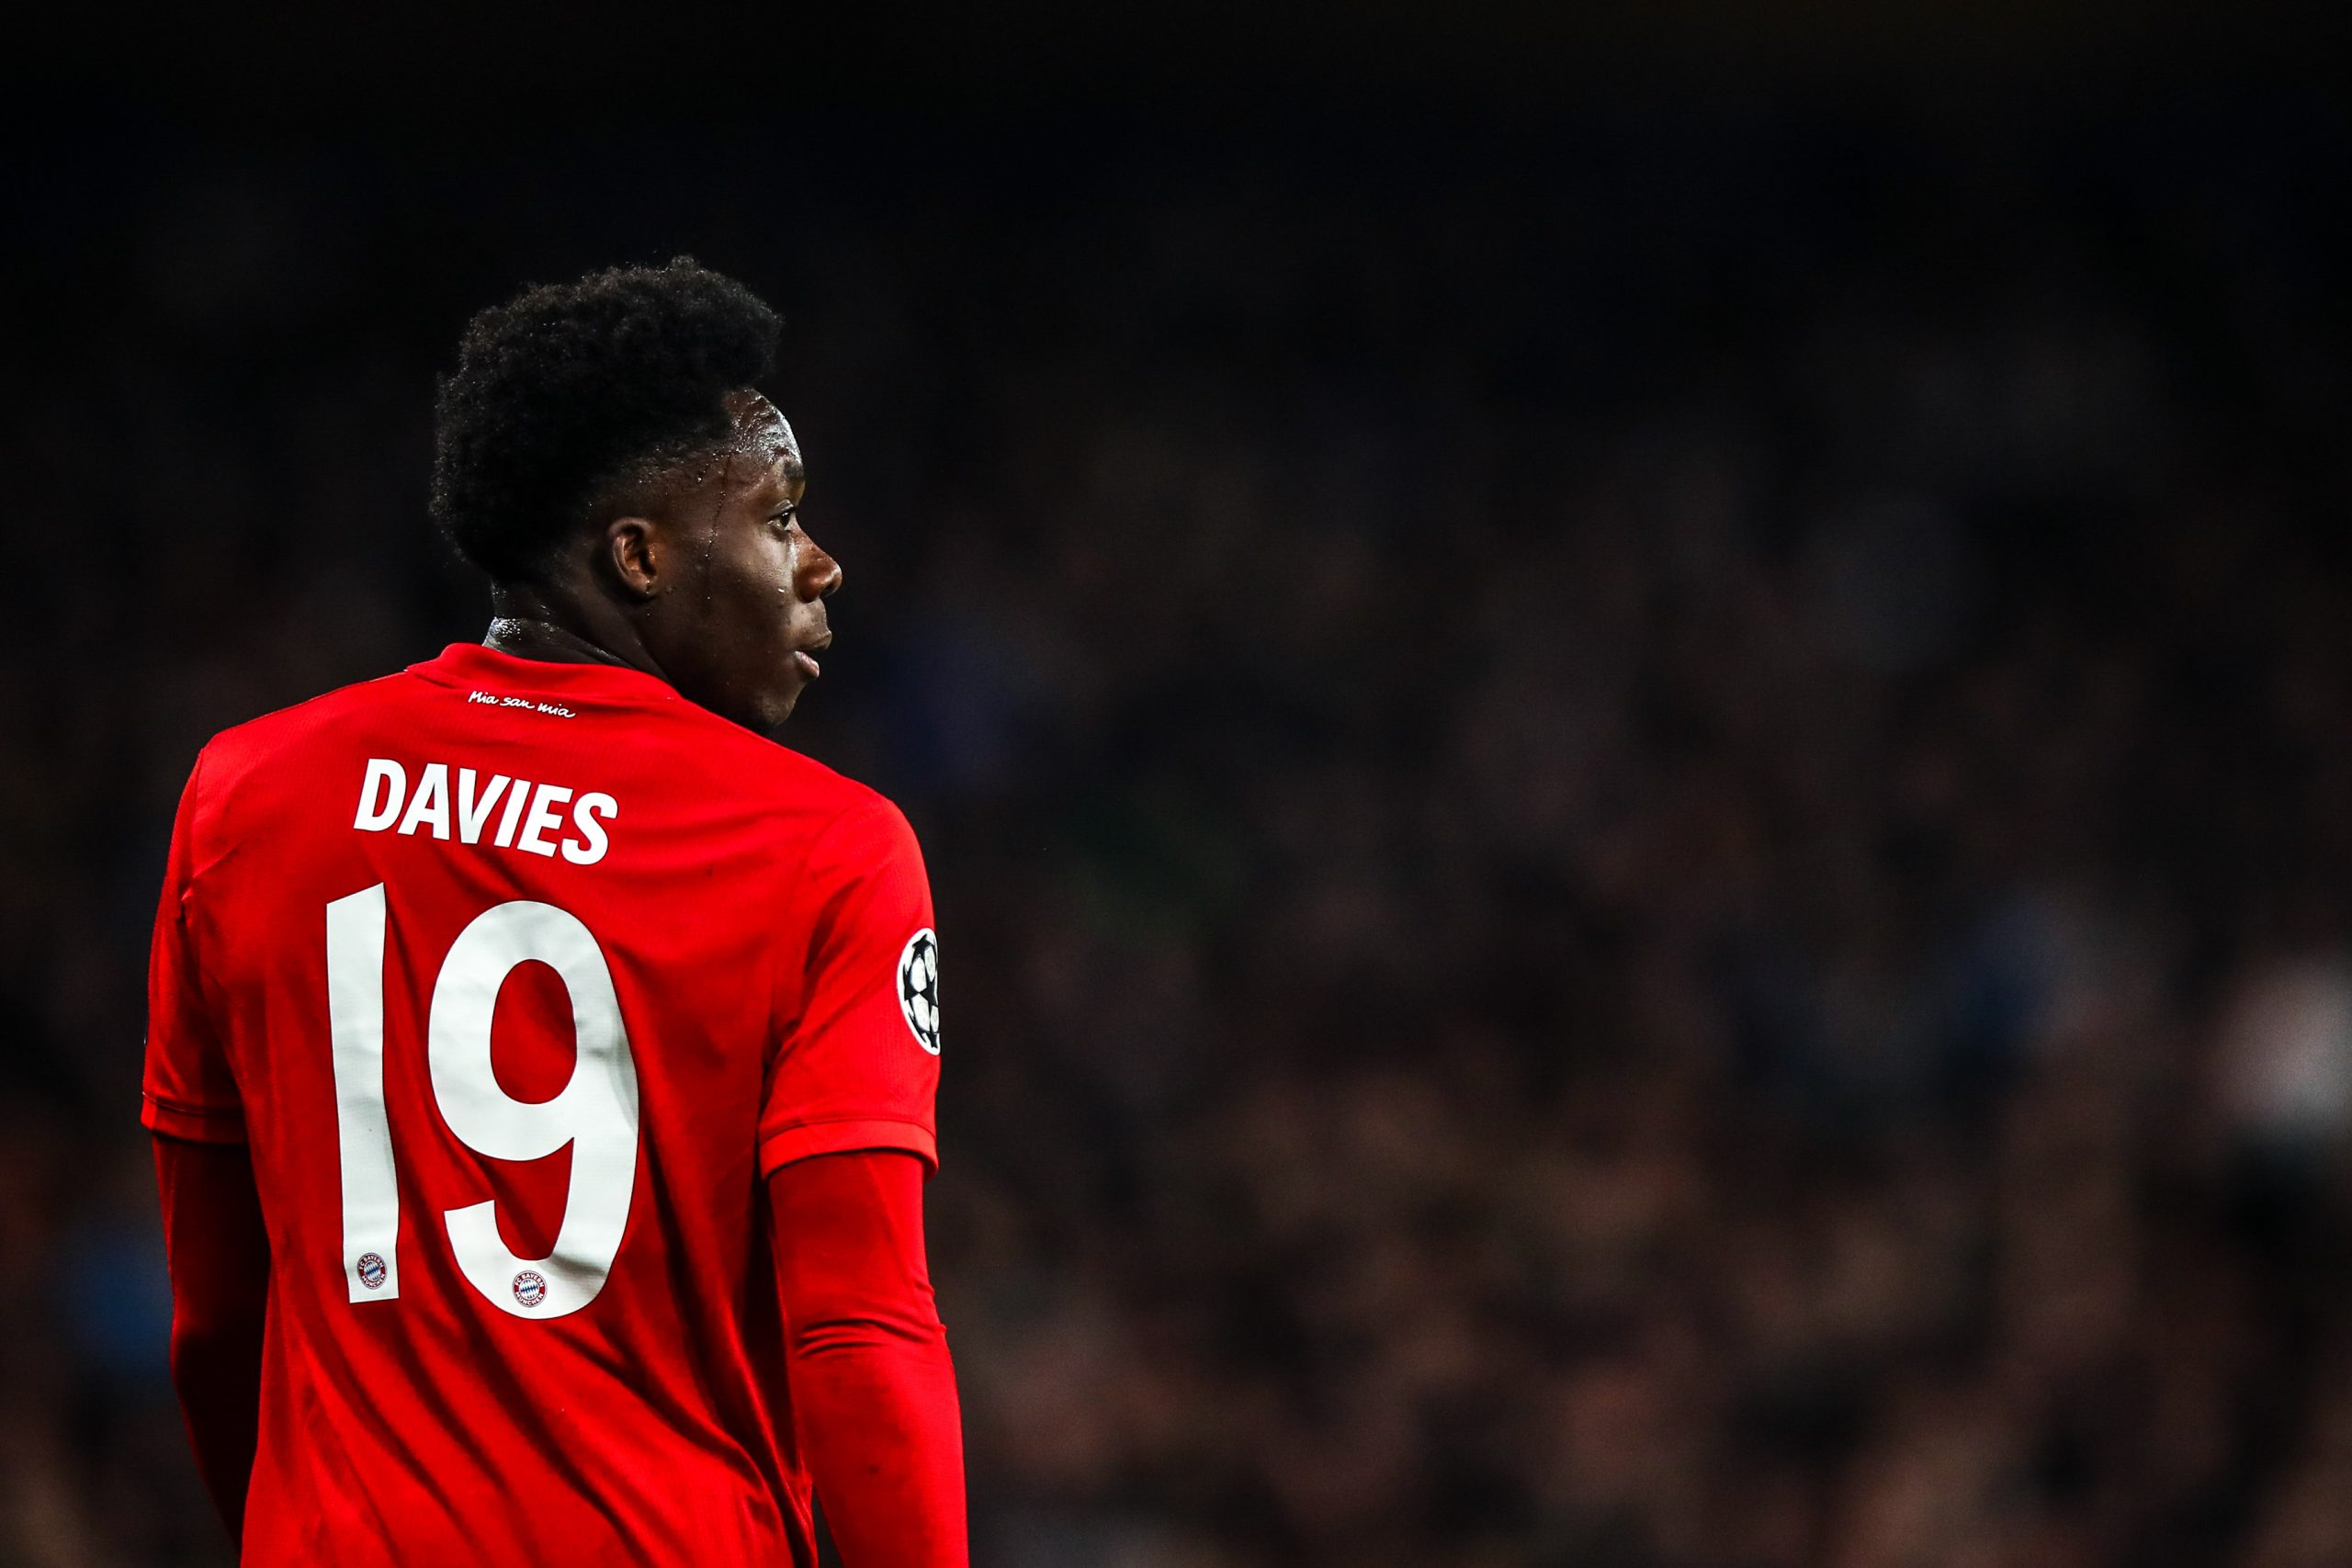 25 February 2020: Alphonso Davies during Bayern Munich's Uefa Champions League first-leg match against Chelsea at Stamford Bridge in London, England. (Photograph by Robbie Jay Barratt – AMA/ Getty Images)